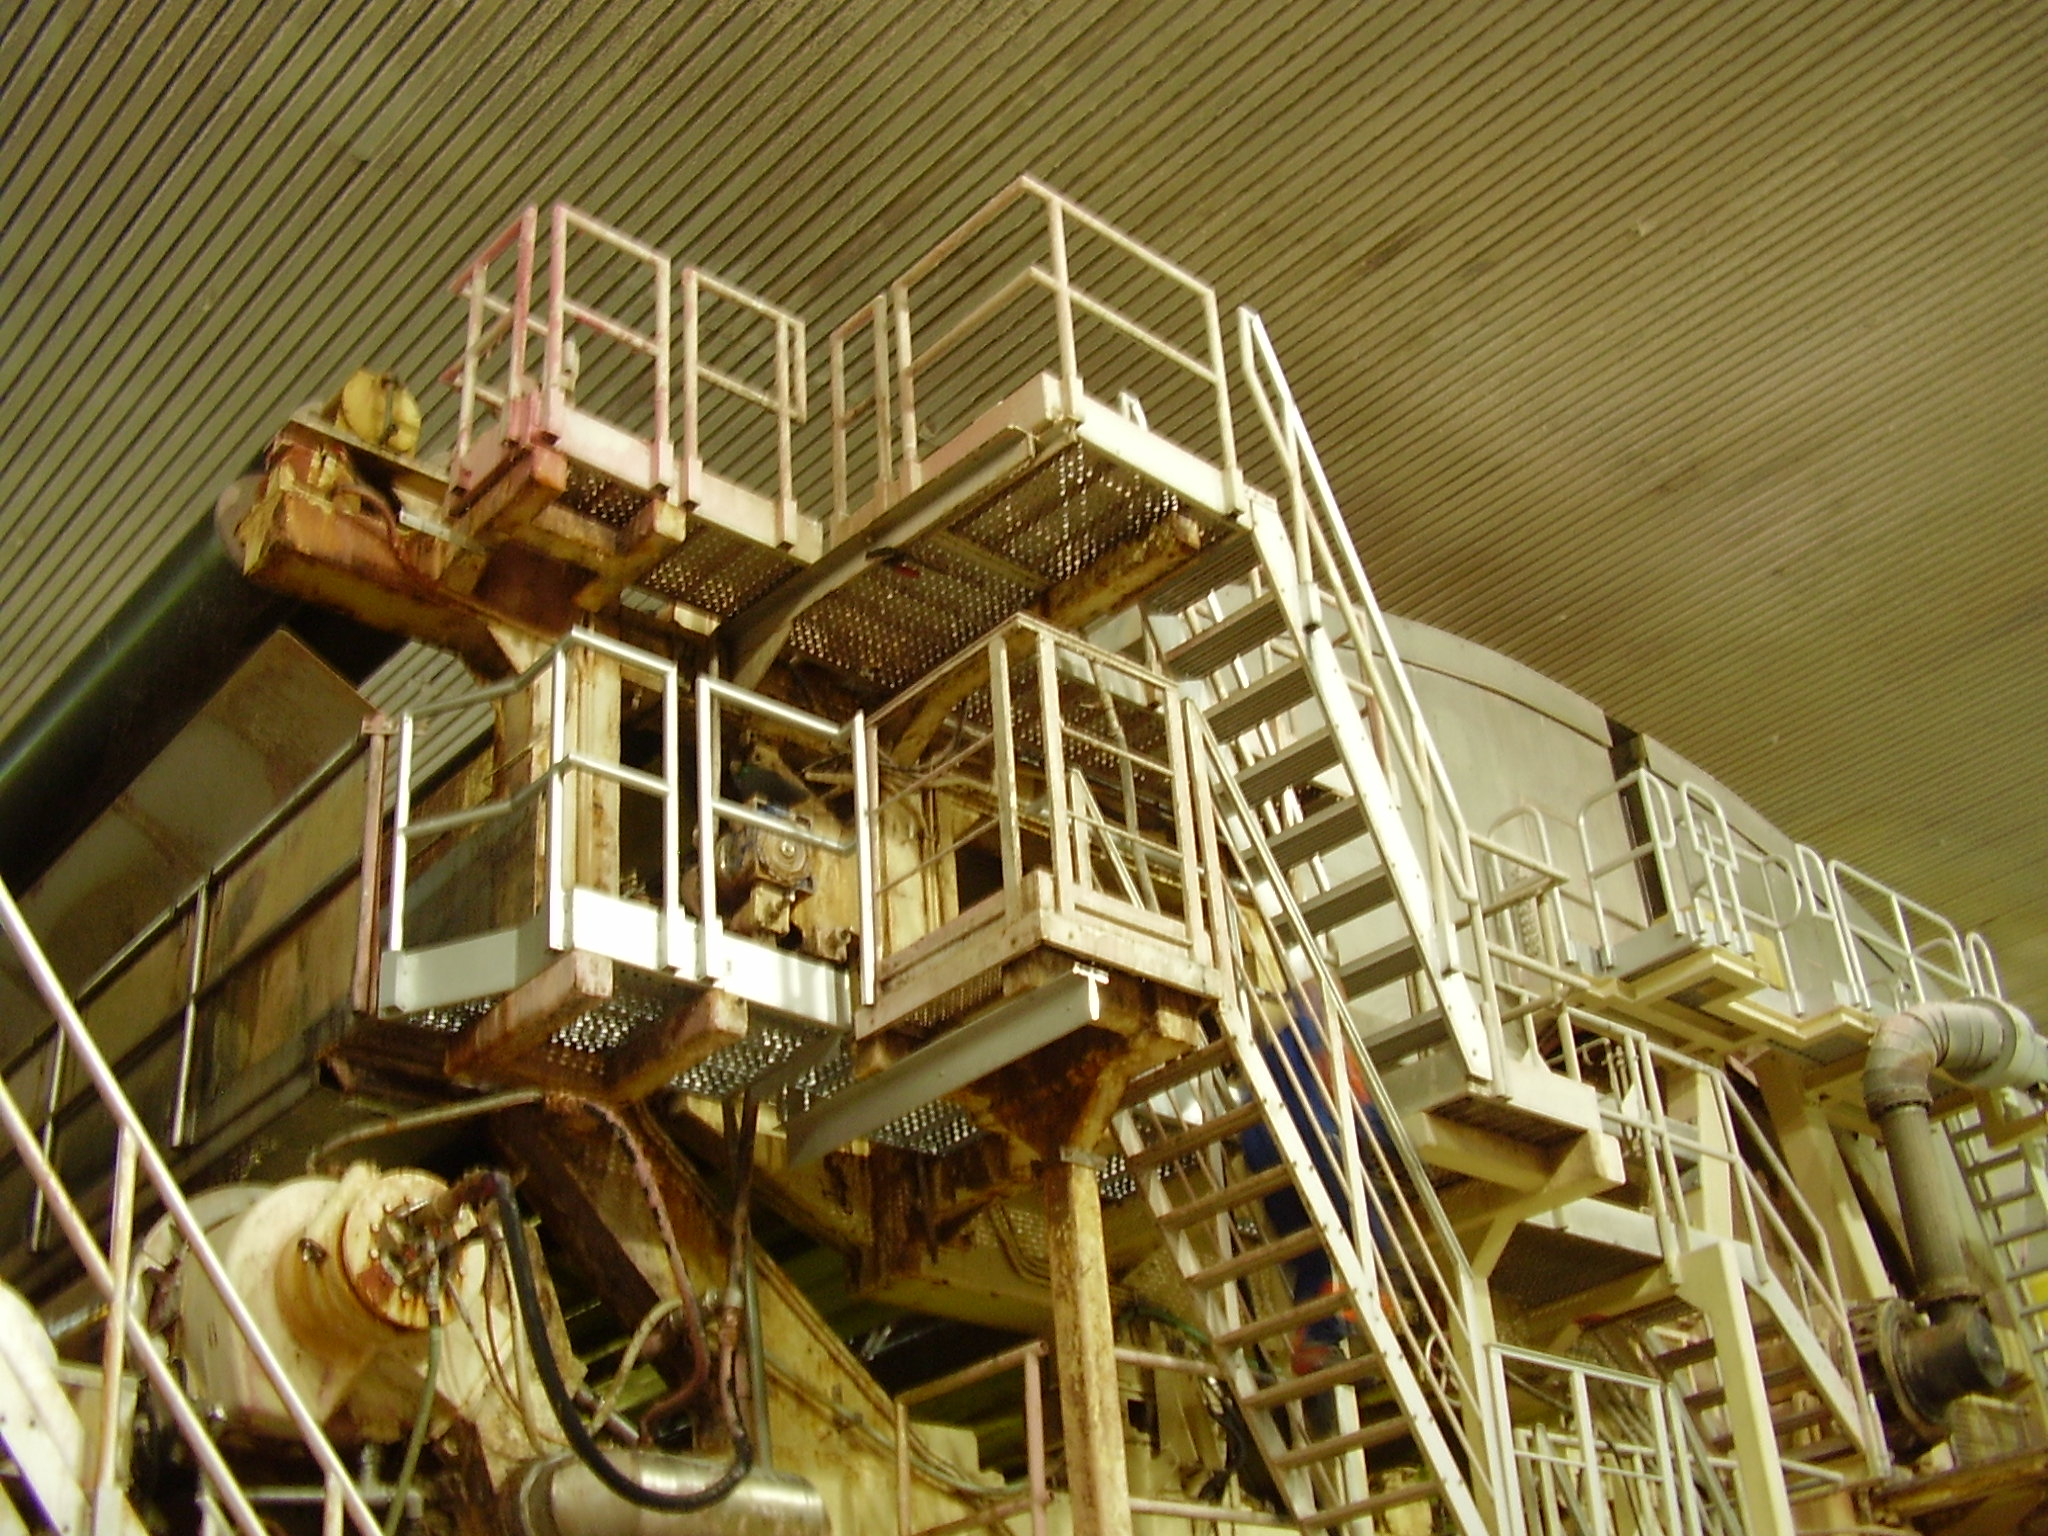 Machine access stairs in aluminum